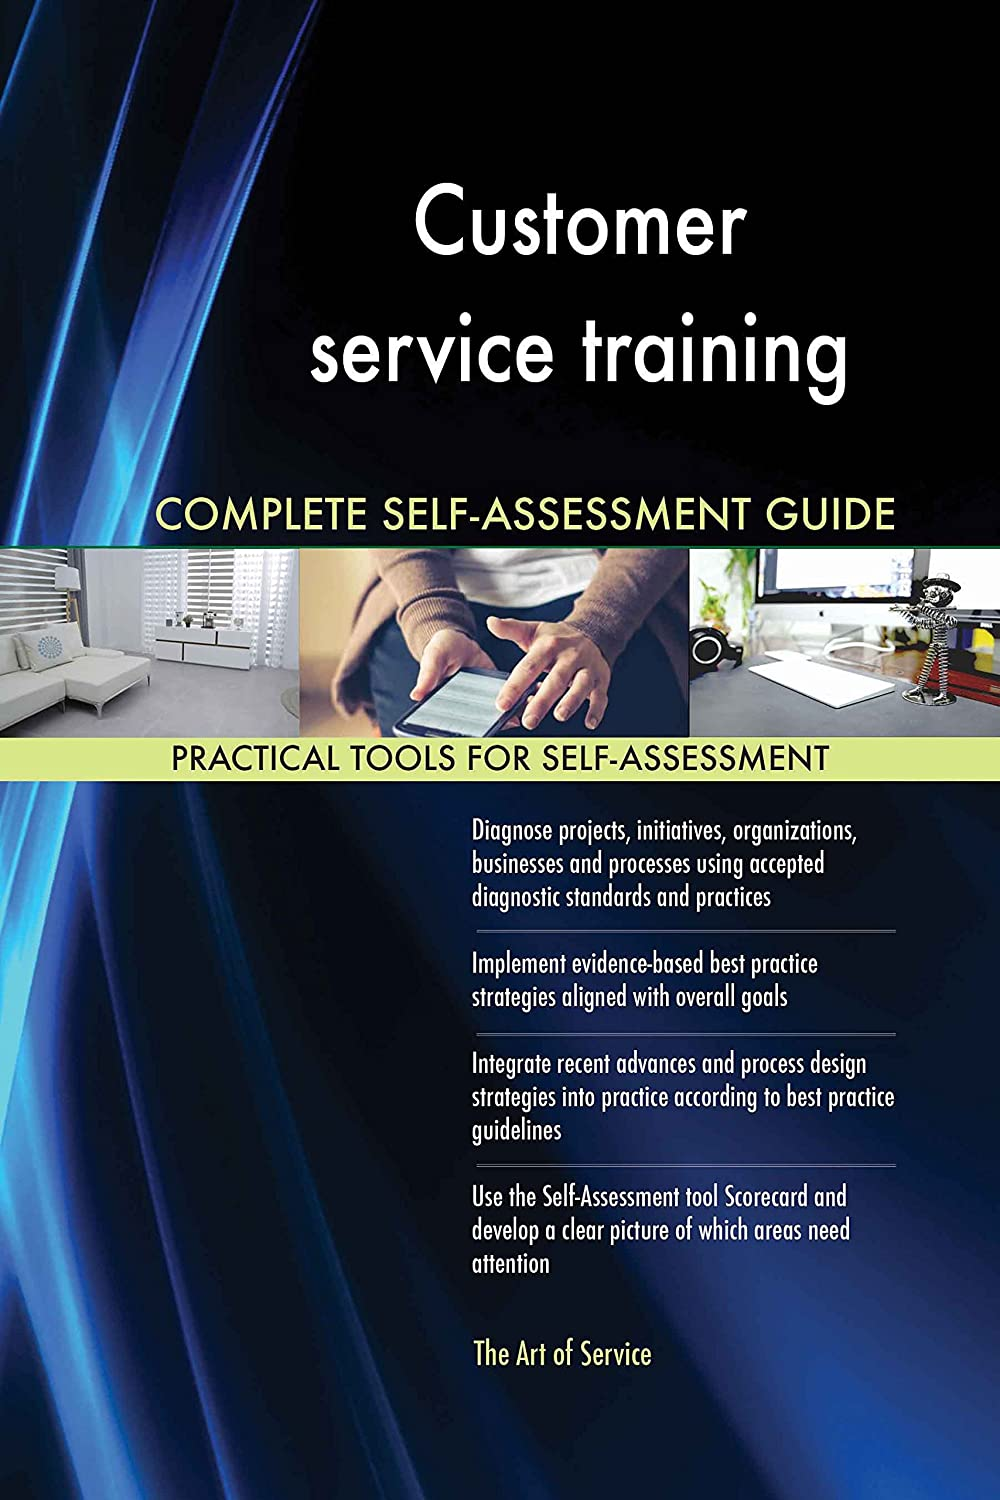 Amazon.com: Customer service training Toolkit: best-practice templates,  step-by-step work plans and maturity diagnostics